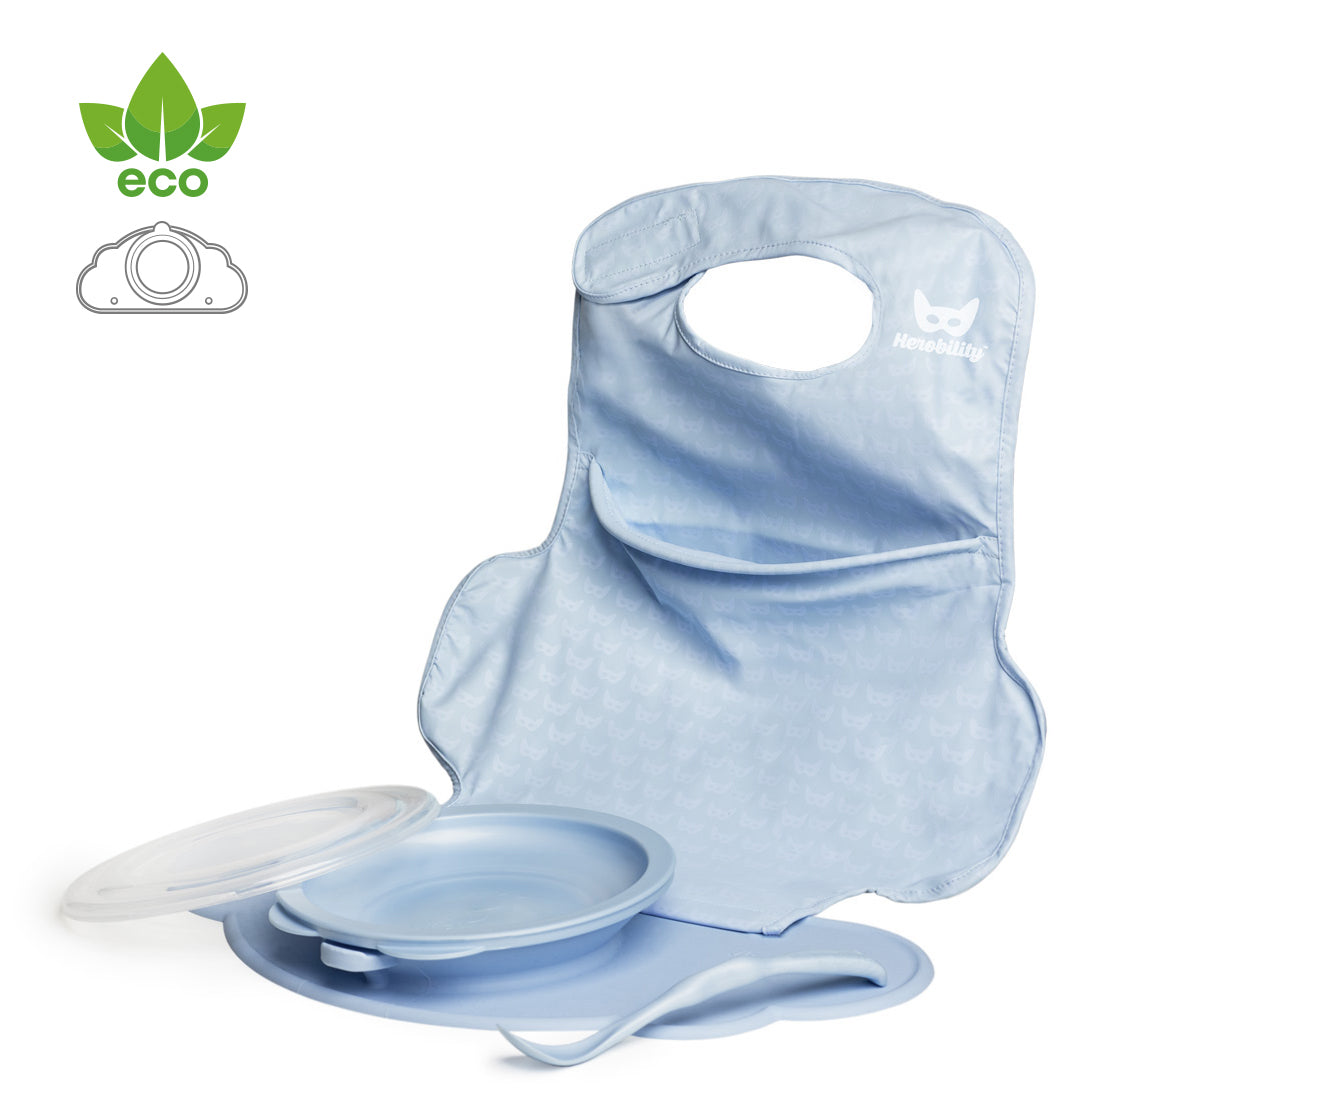 Eco Placemat Feeding Set Blue